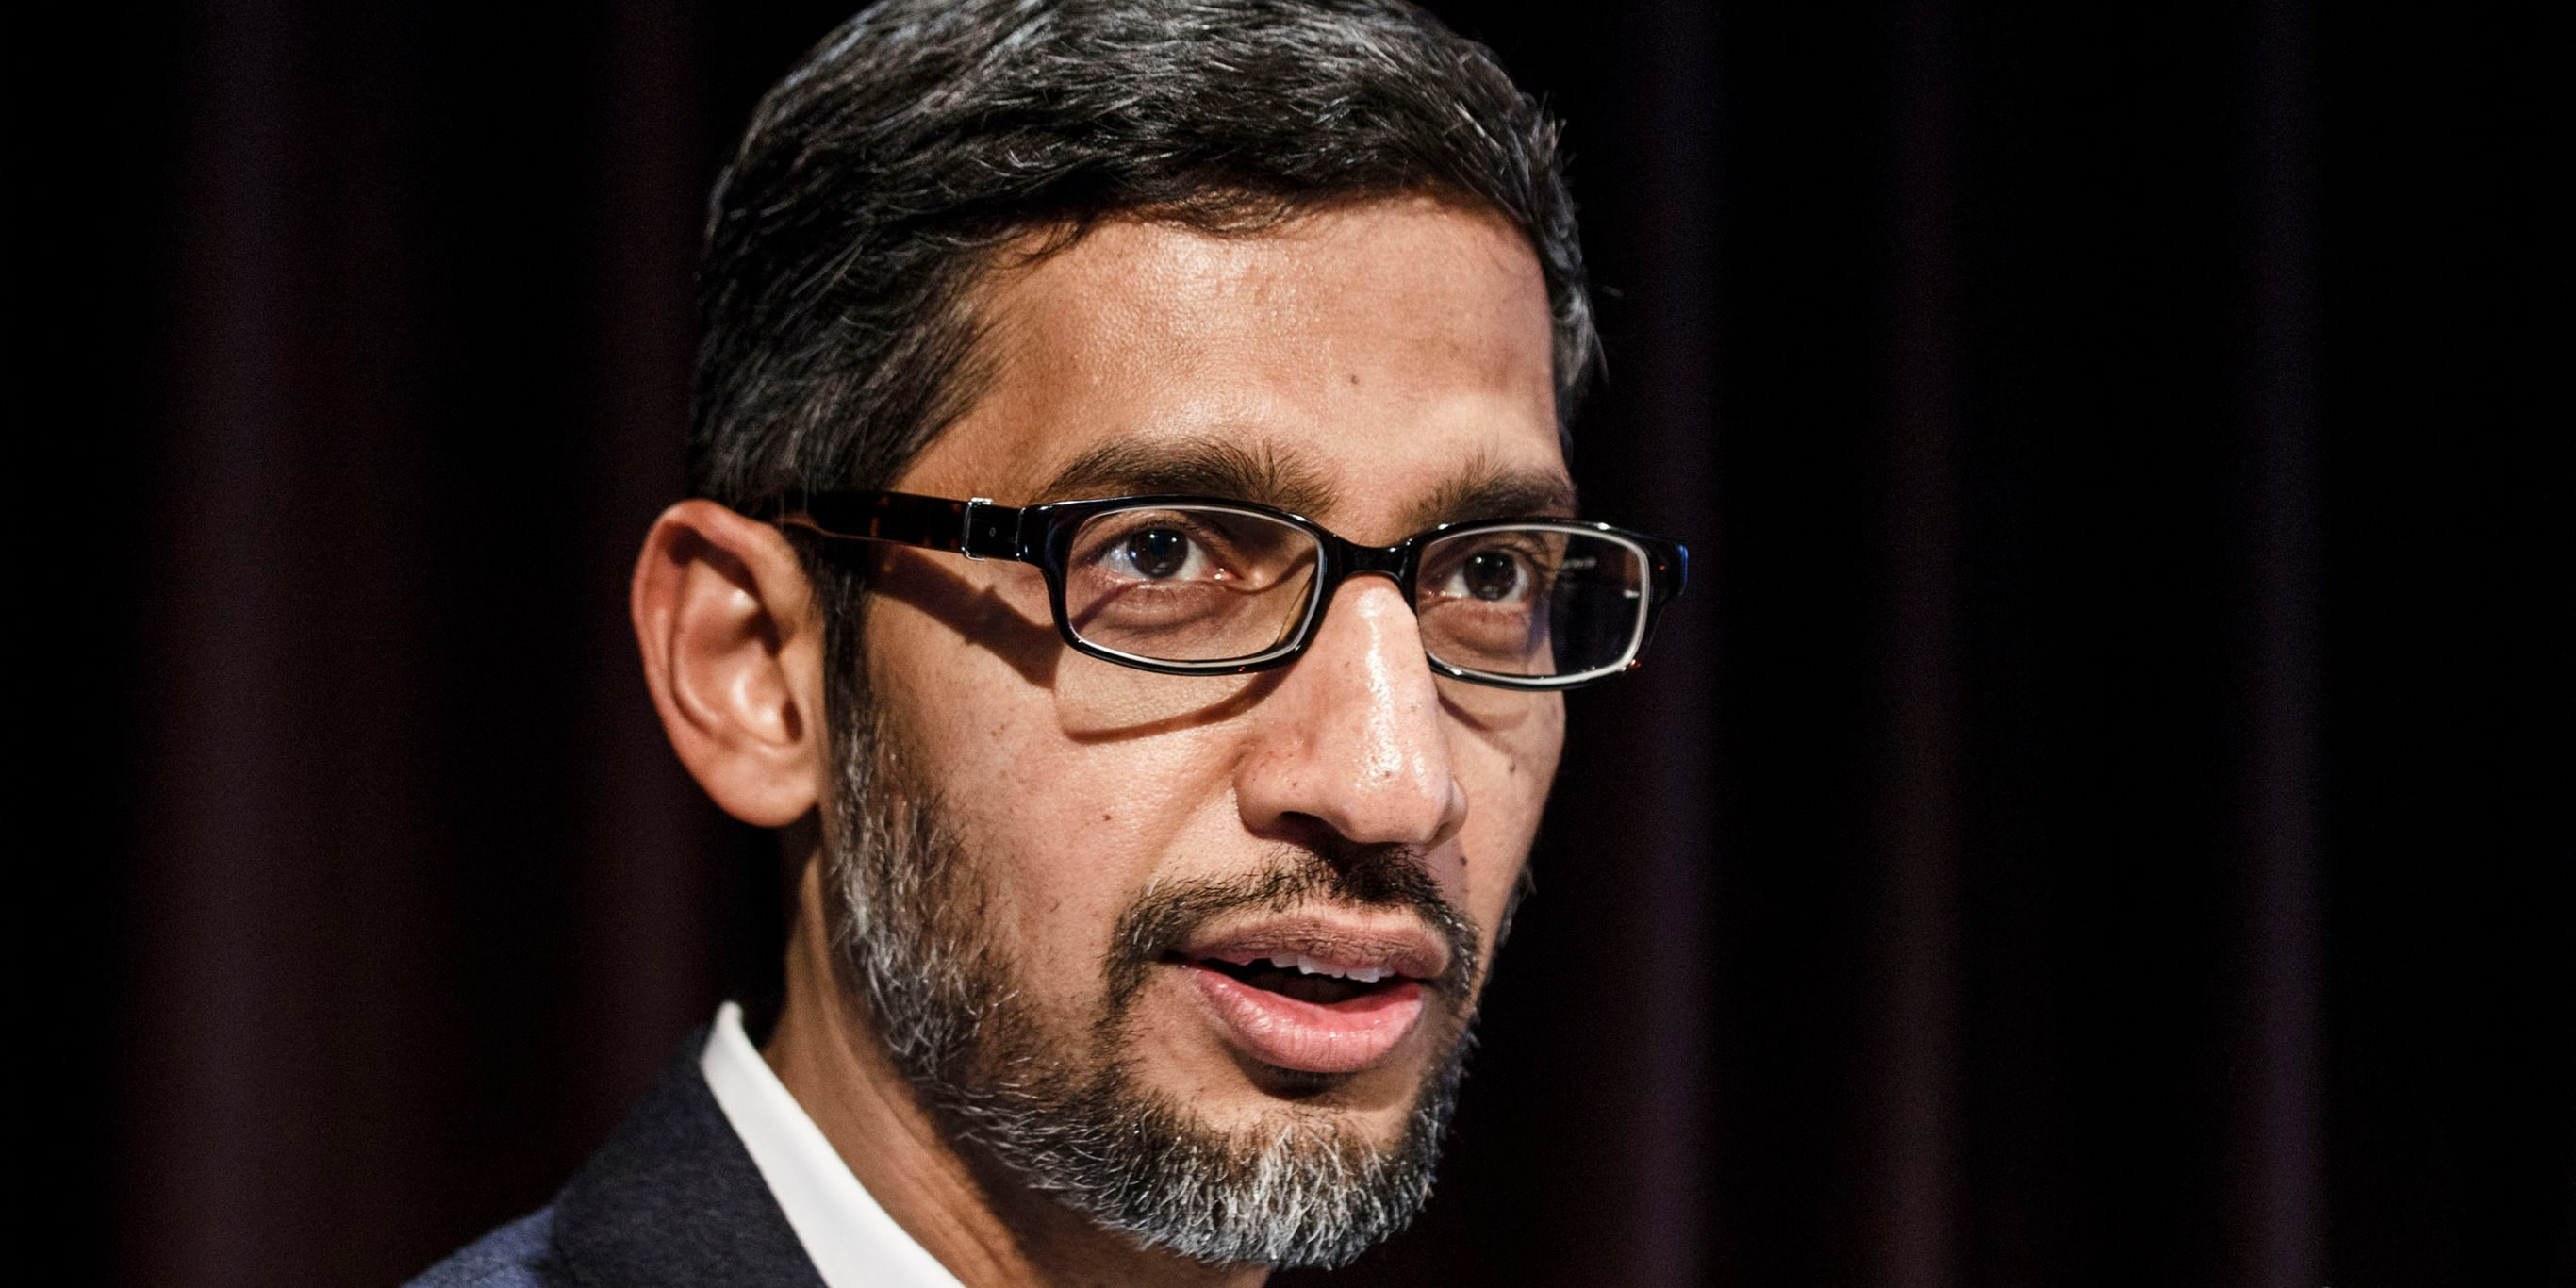 Google's CEO Sundar Pichai warns against 'rushing' into regulating AI, which happens to be vital to Google's future growth